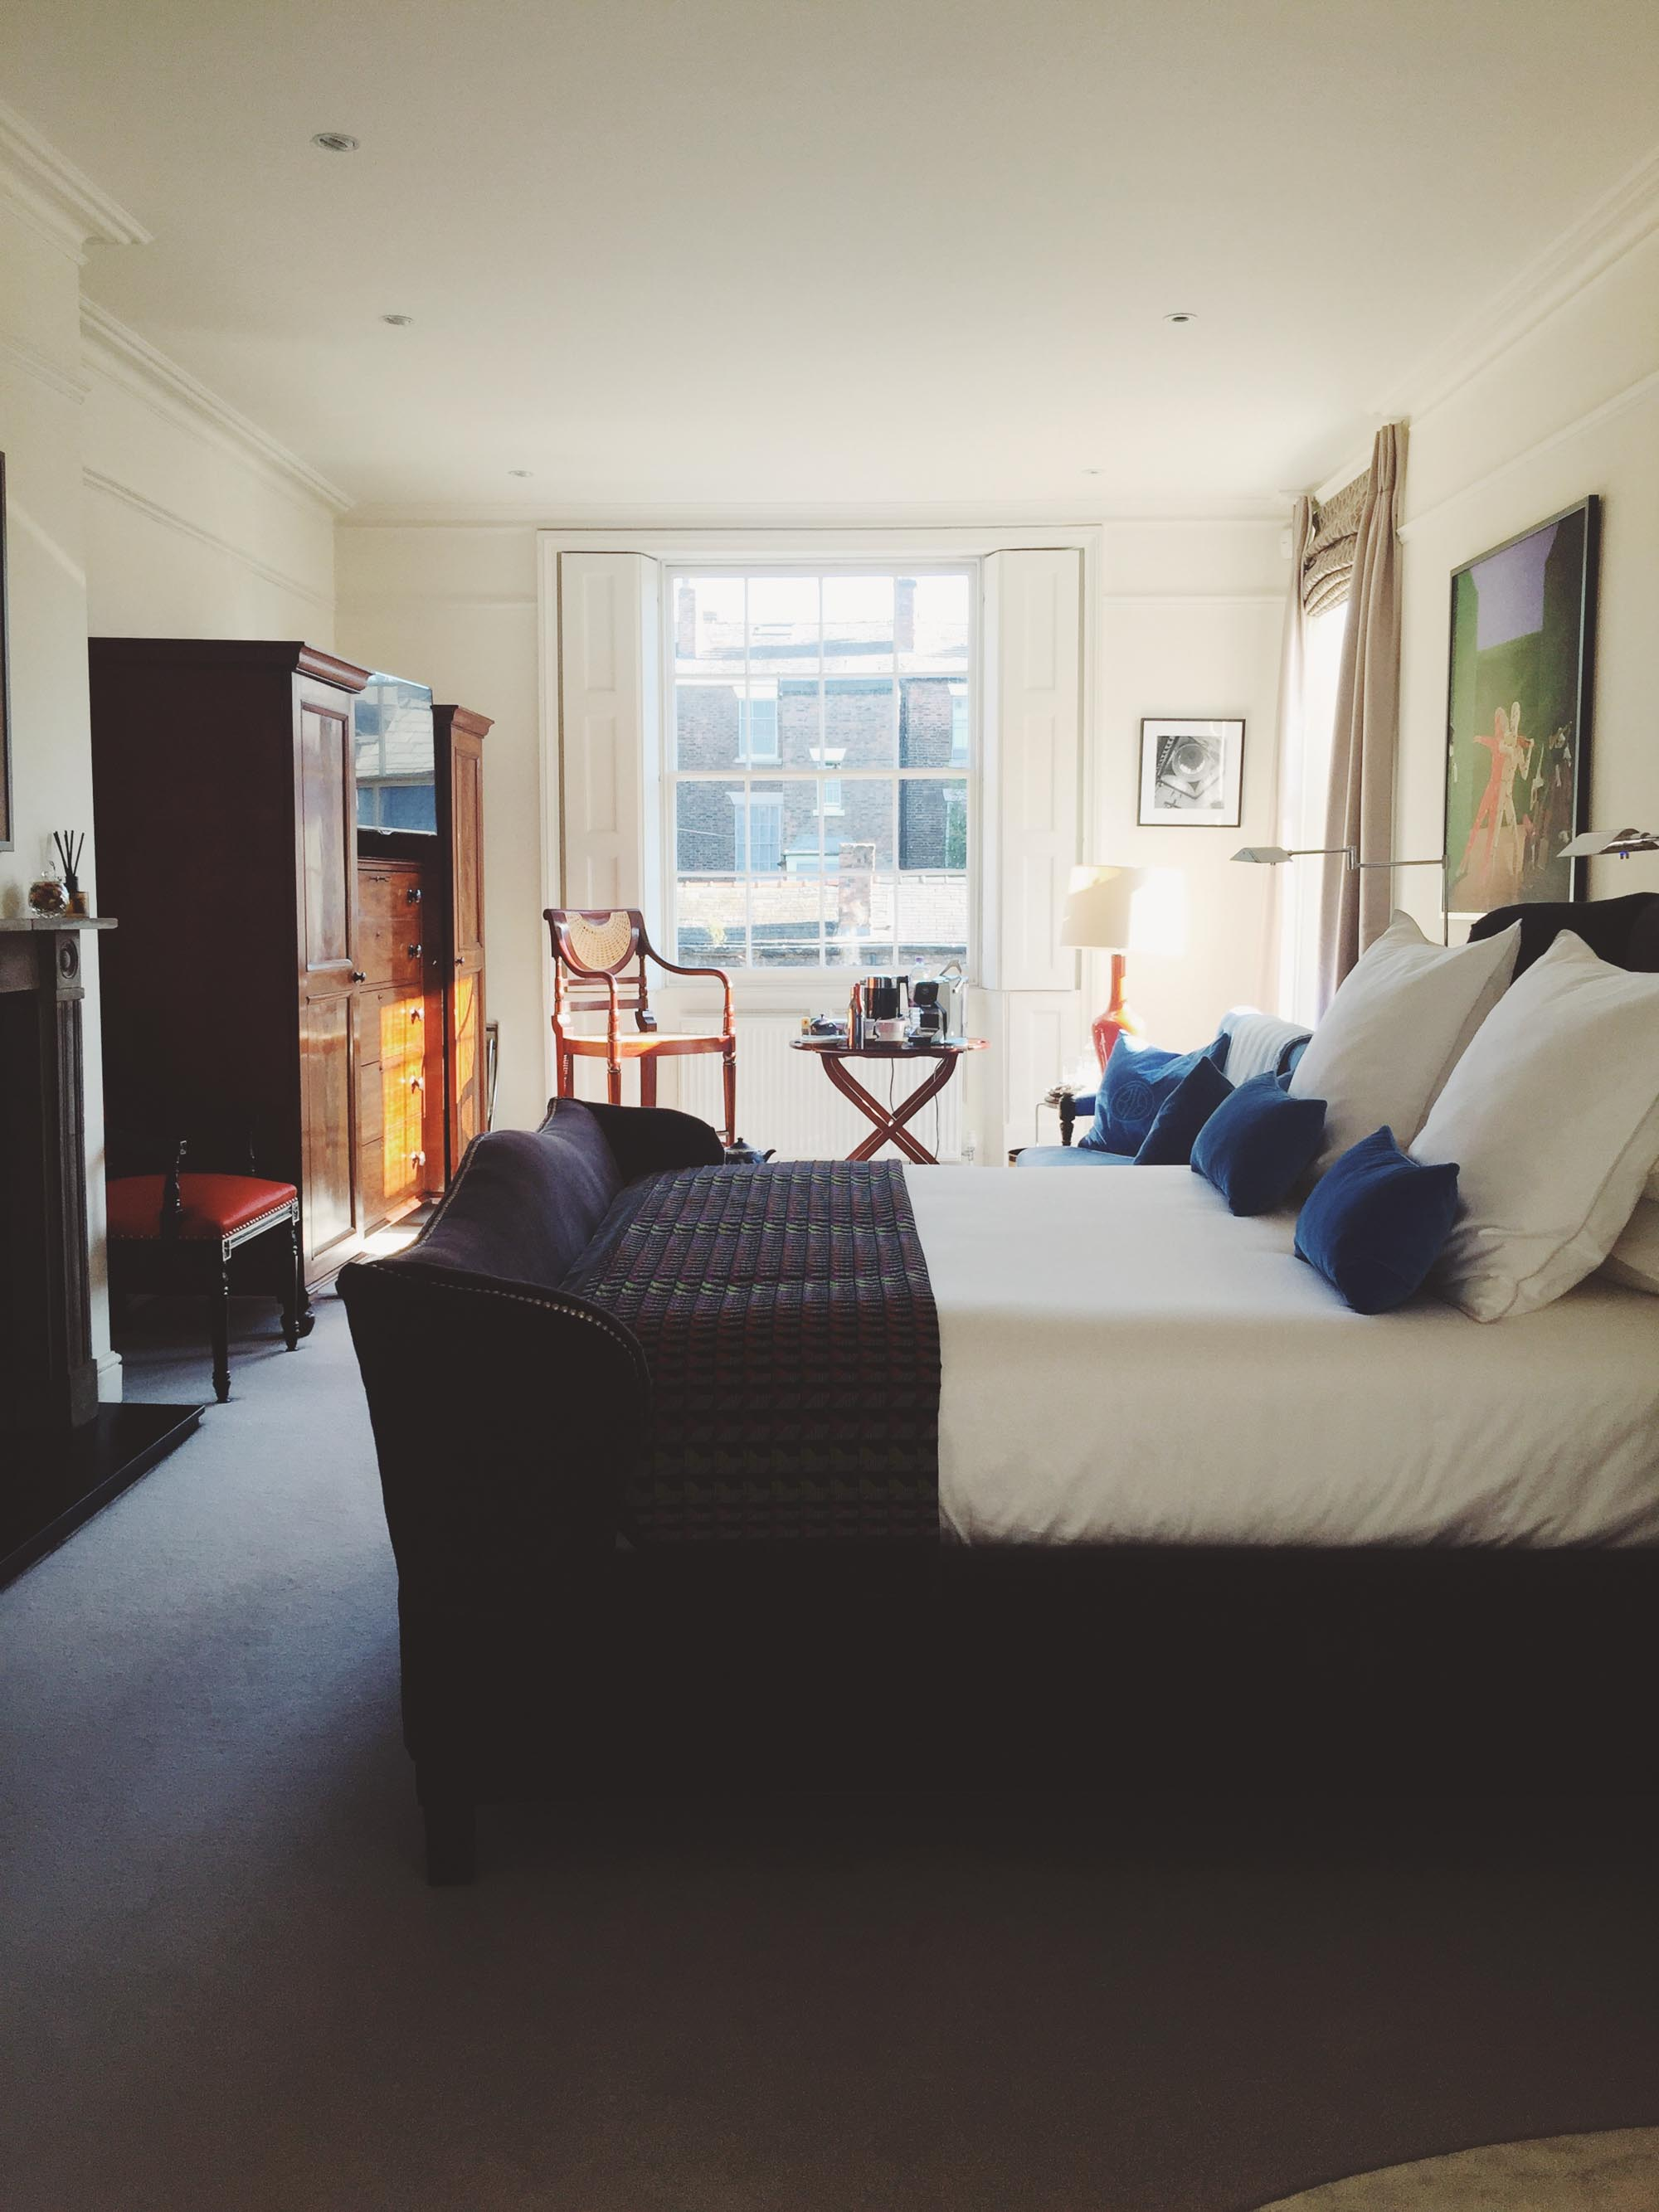 The Best Hip Boutique Hotels in Liverpool